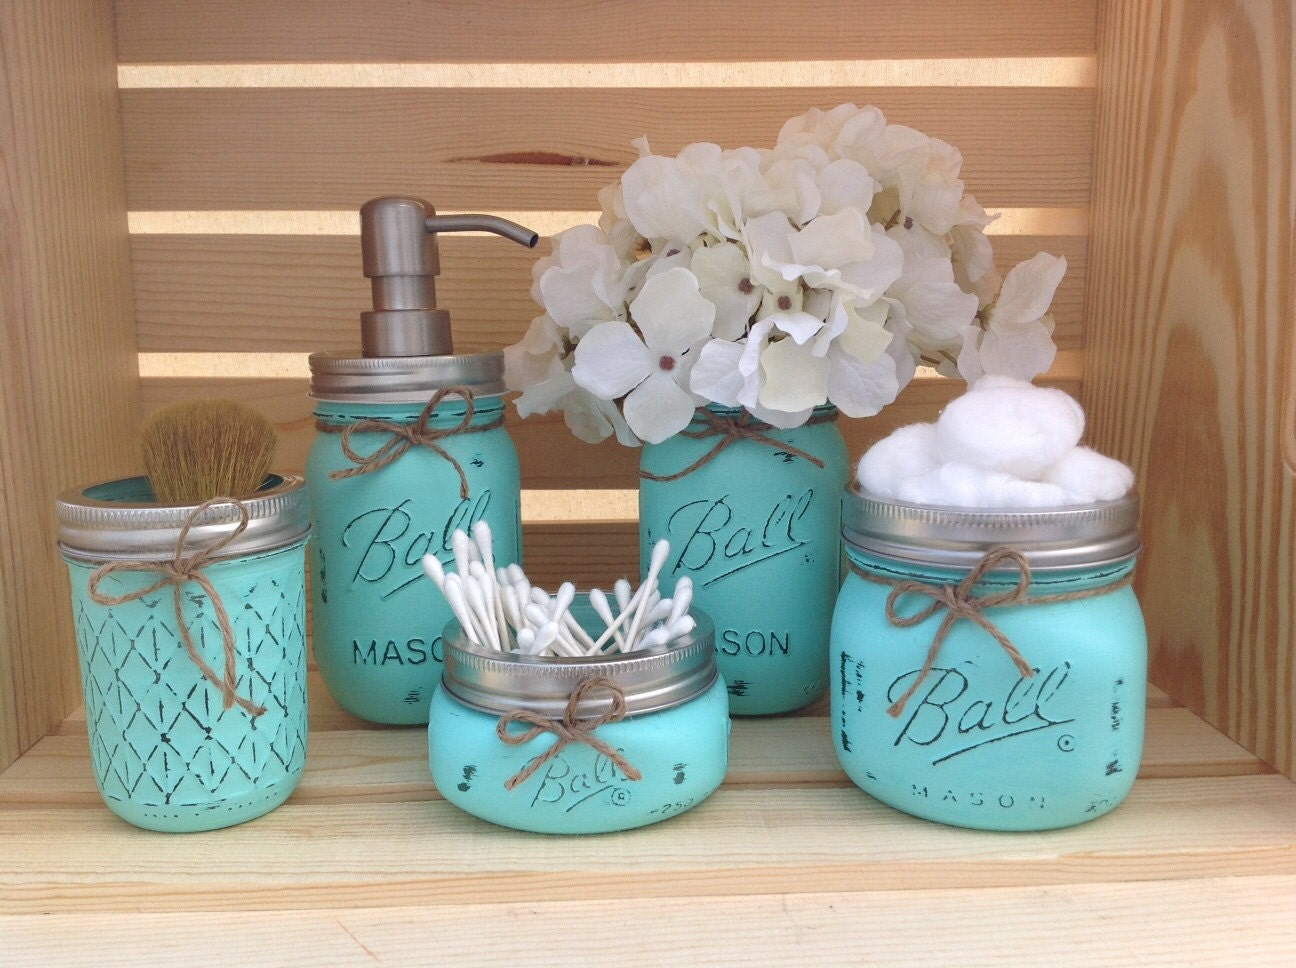 Mason jar bathroom set mason jars bathroom decor bridal by for Items for bathroom